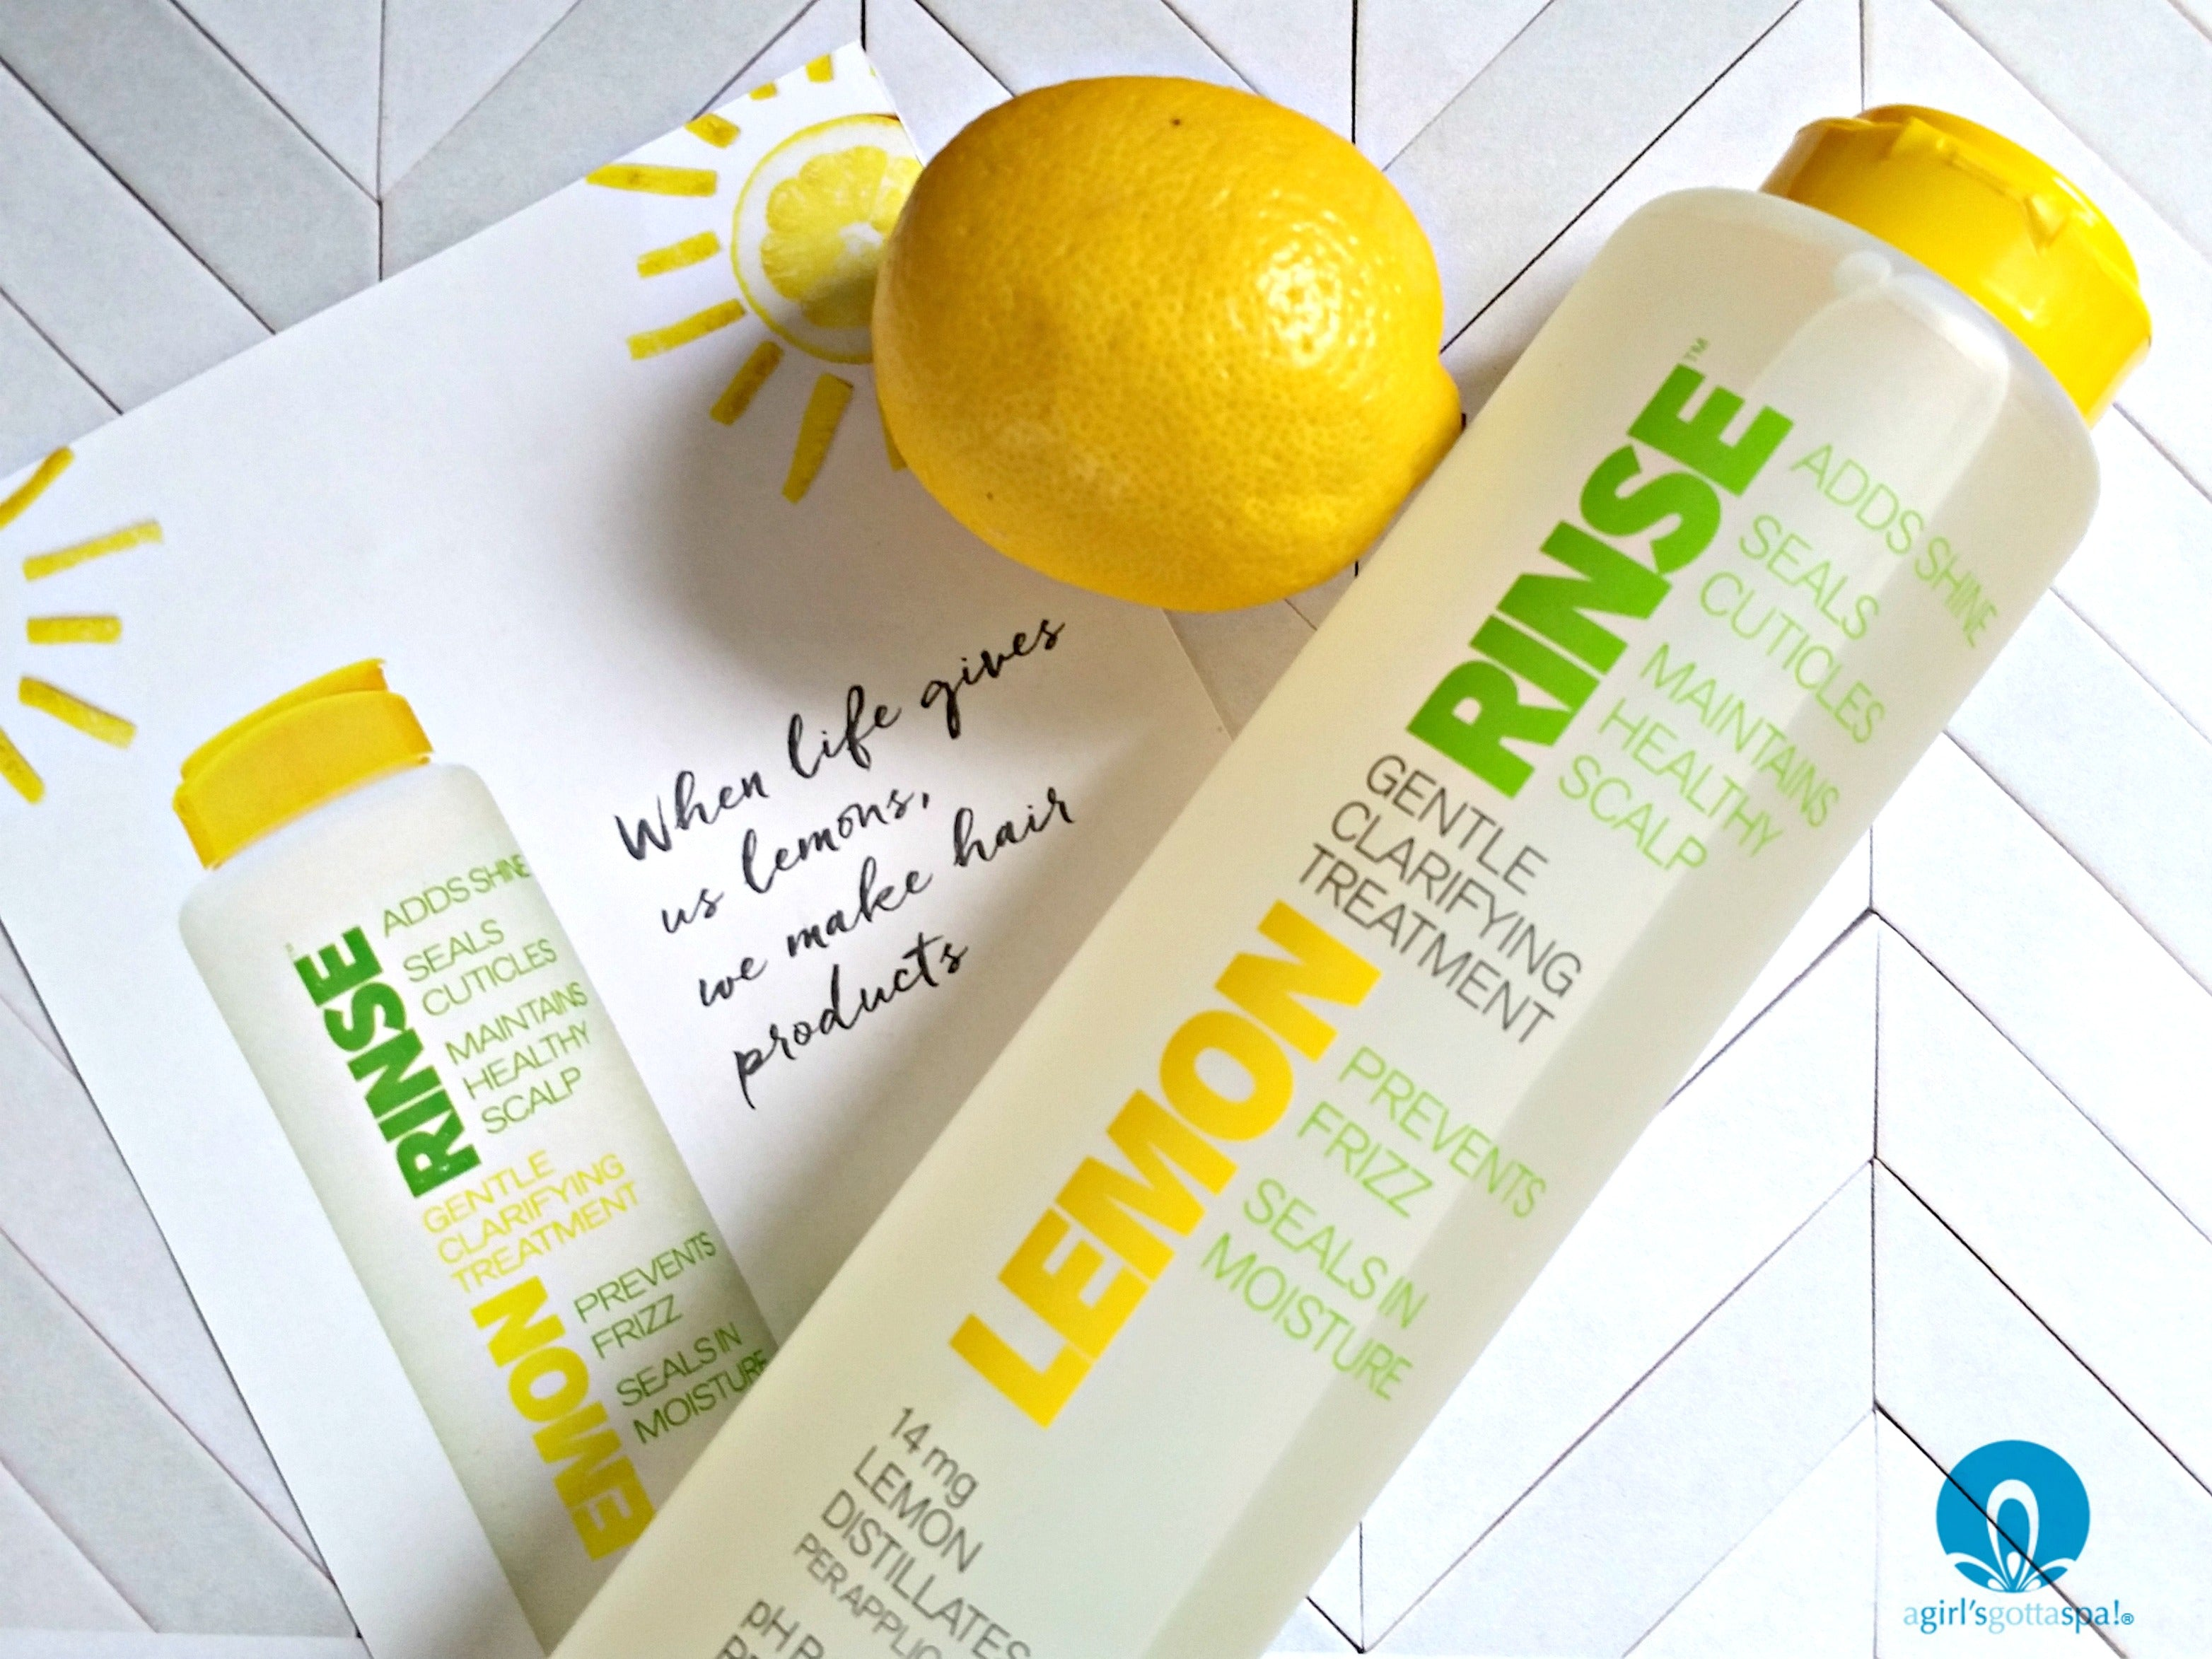 Hair clarifying treatment with Lemon Rinse from Beautiful Nutrition via @agirlsgottaspa